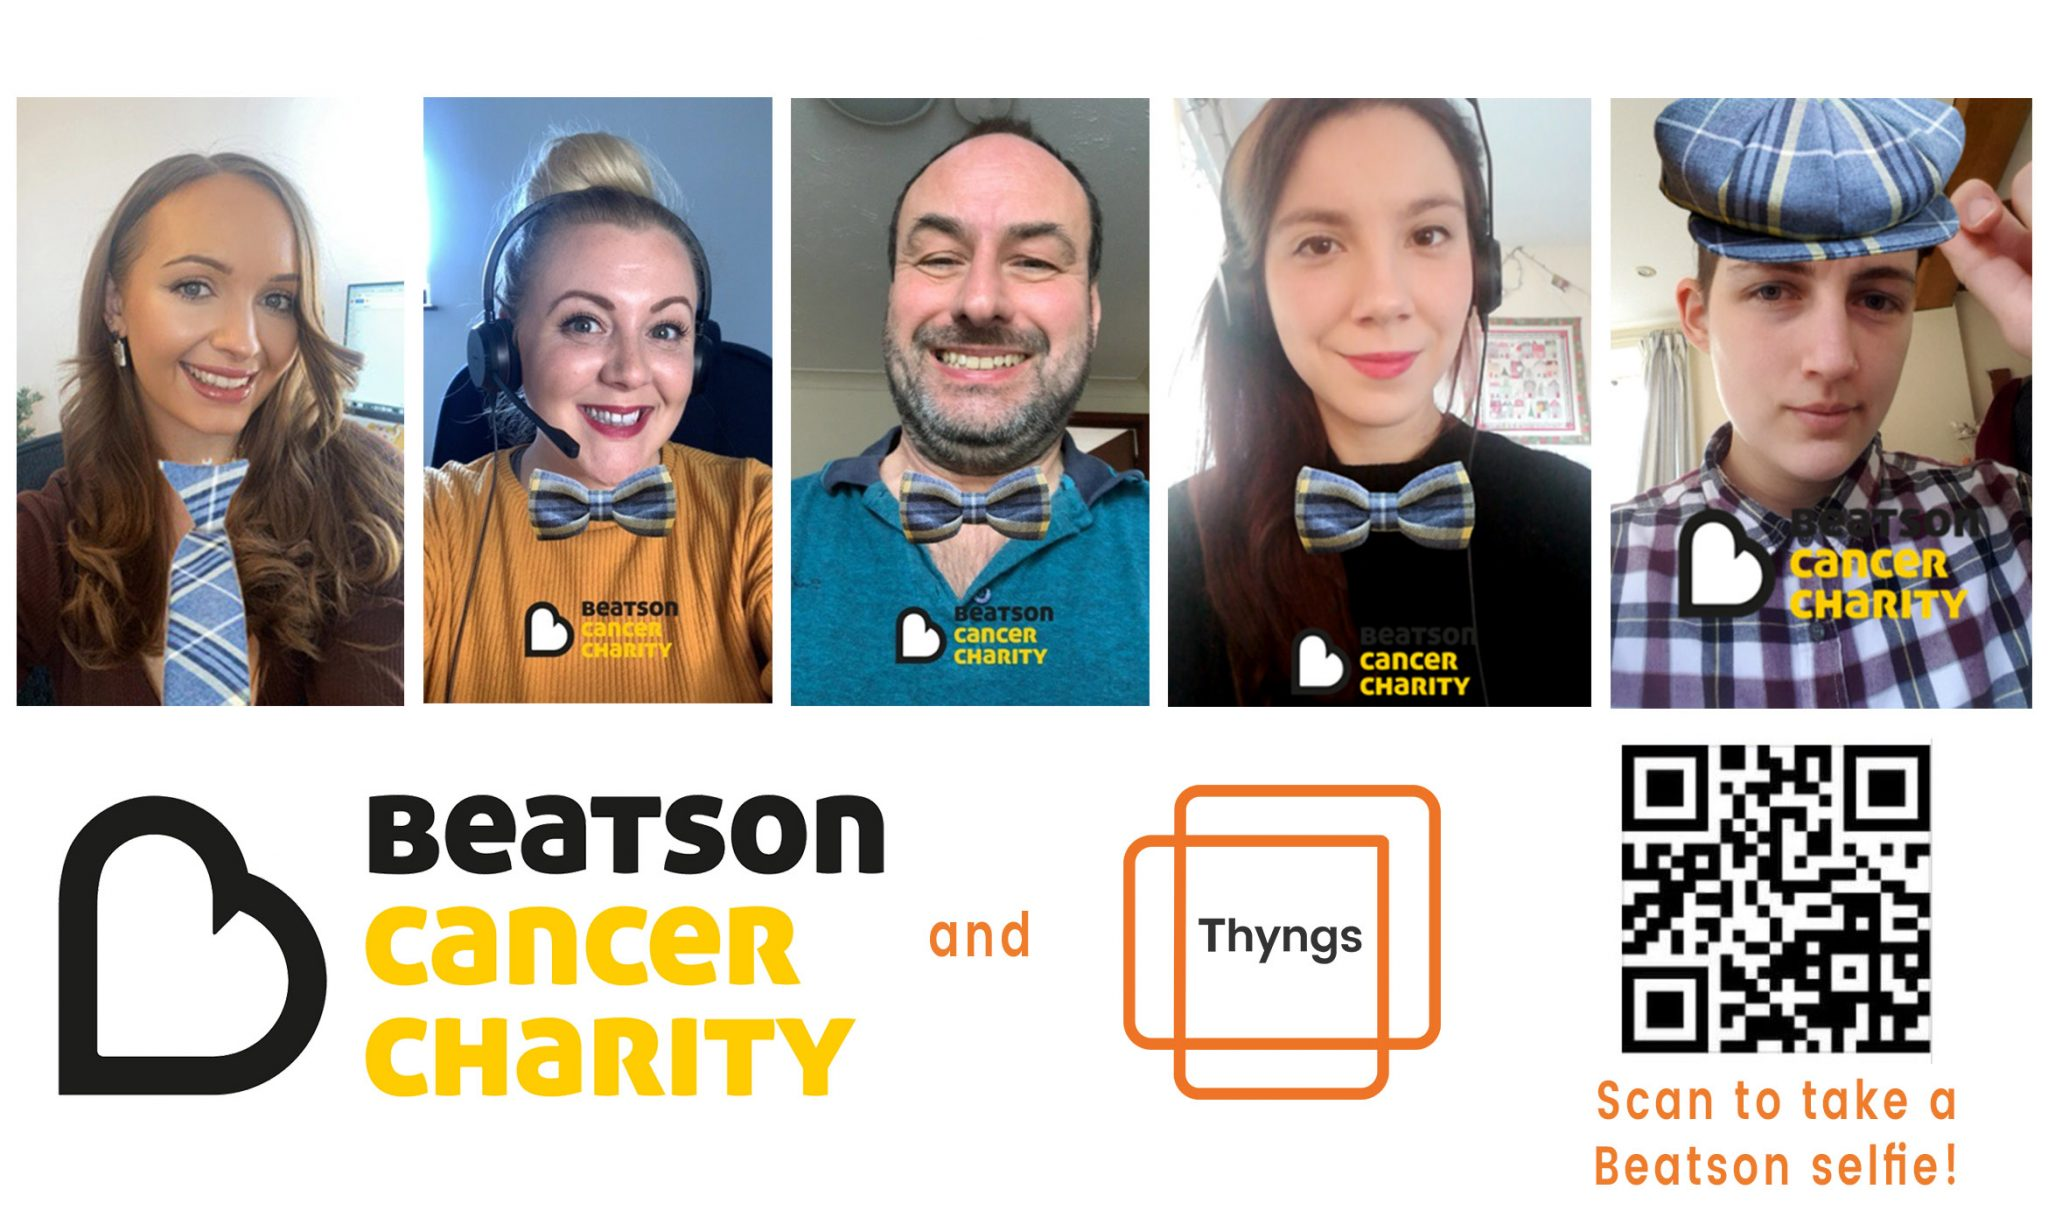 Beatson Cancer Charity Selfie Experience